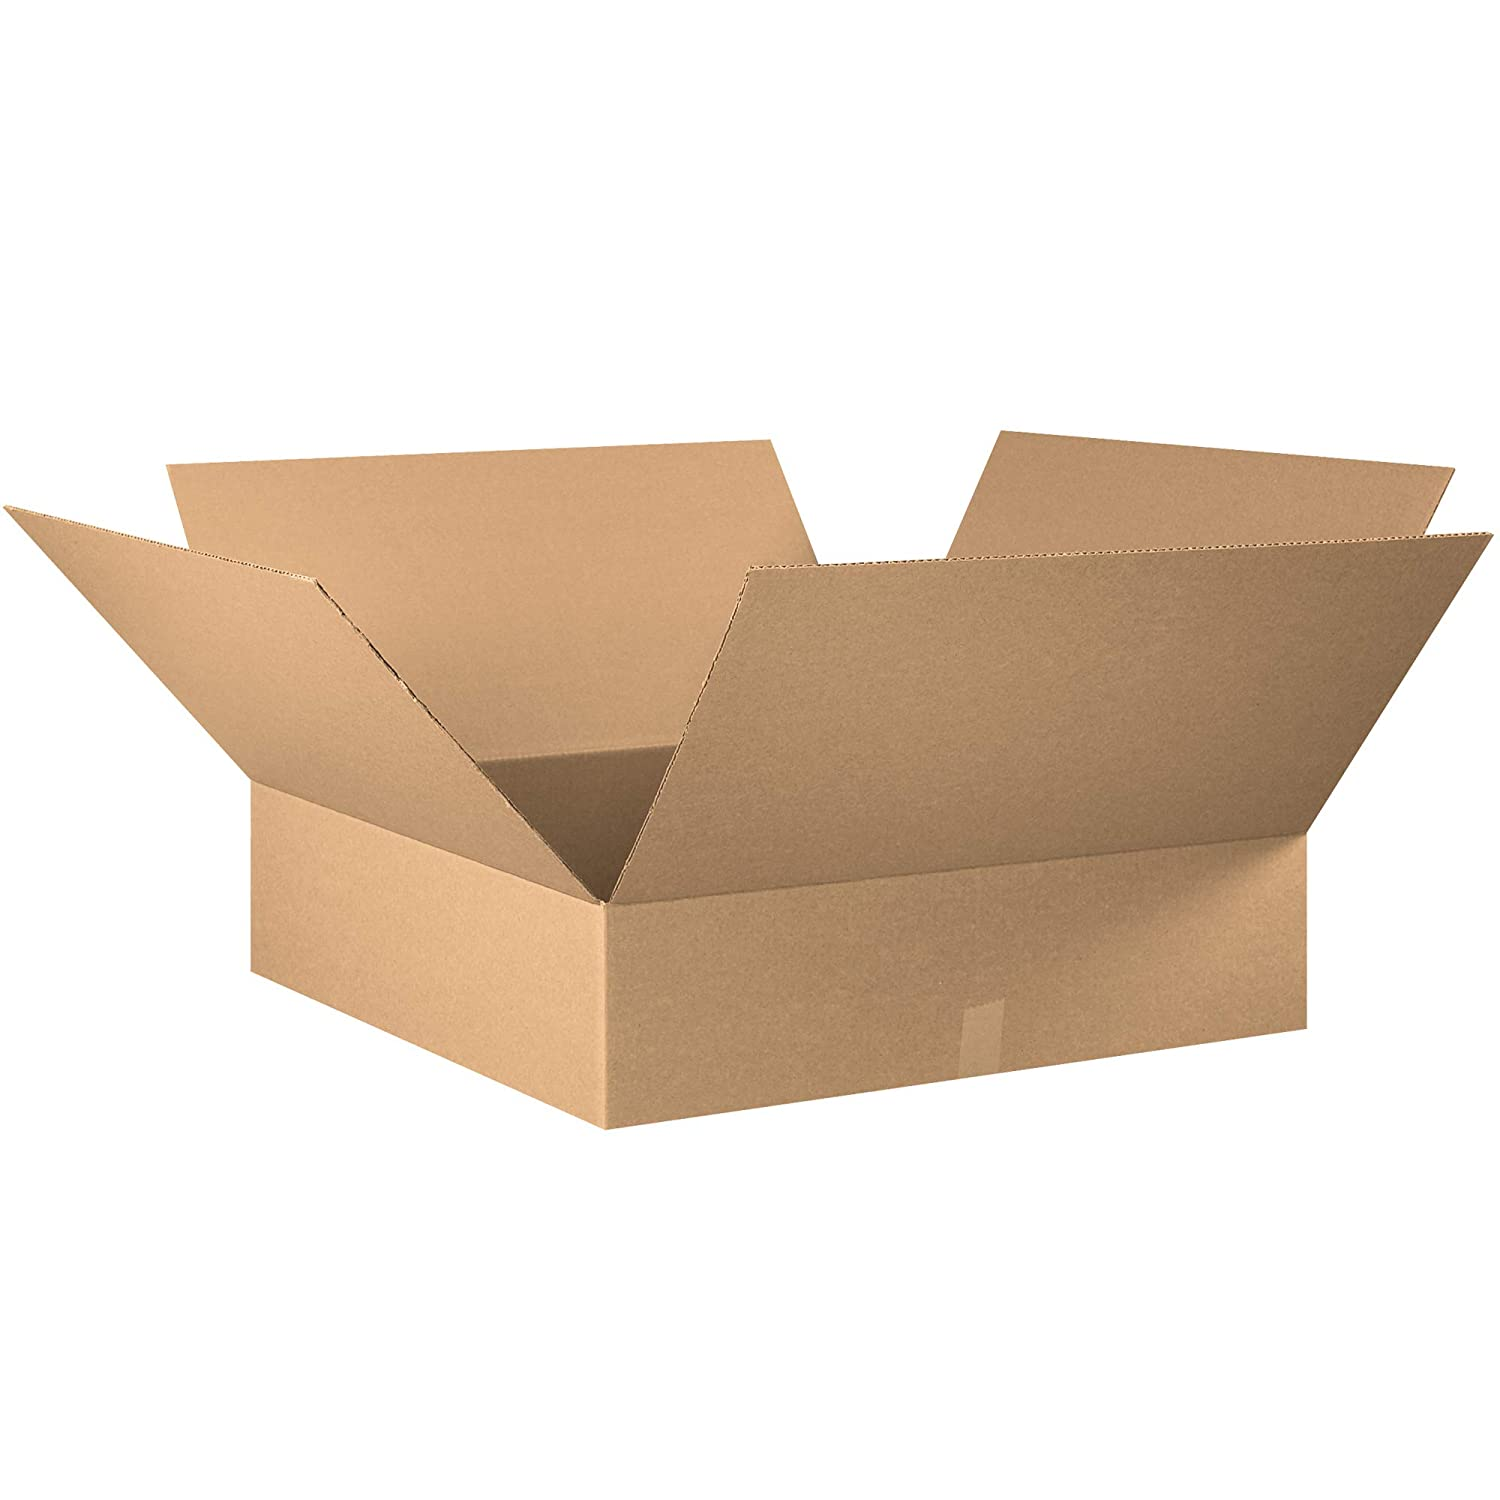 Very popular! Flat Corrugated Boxes 32